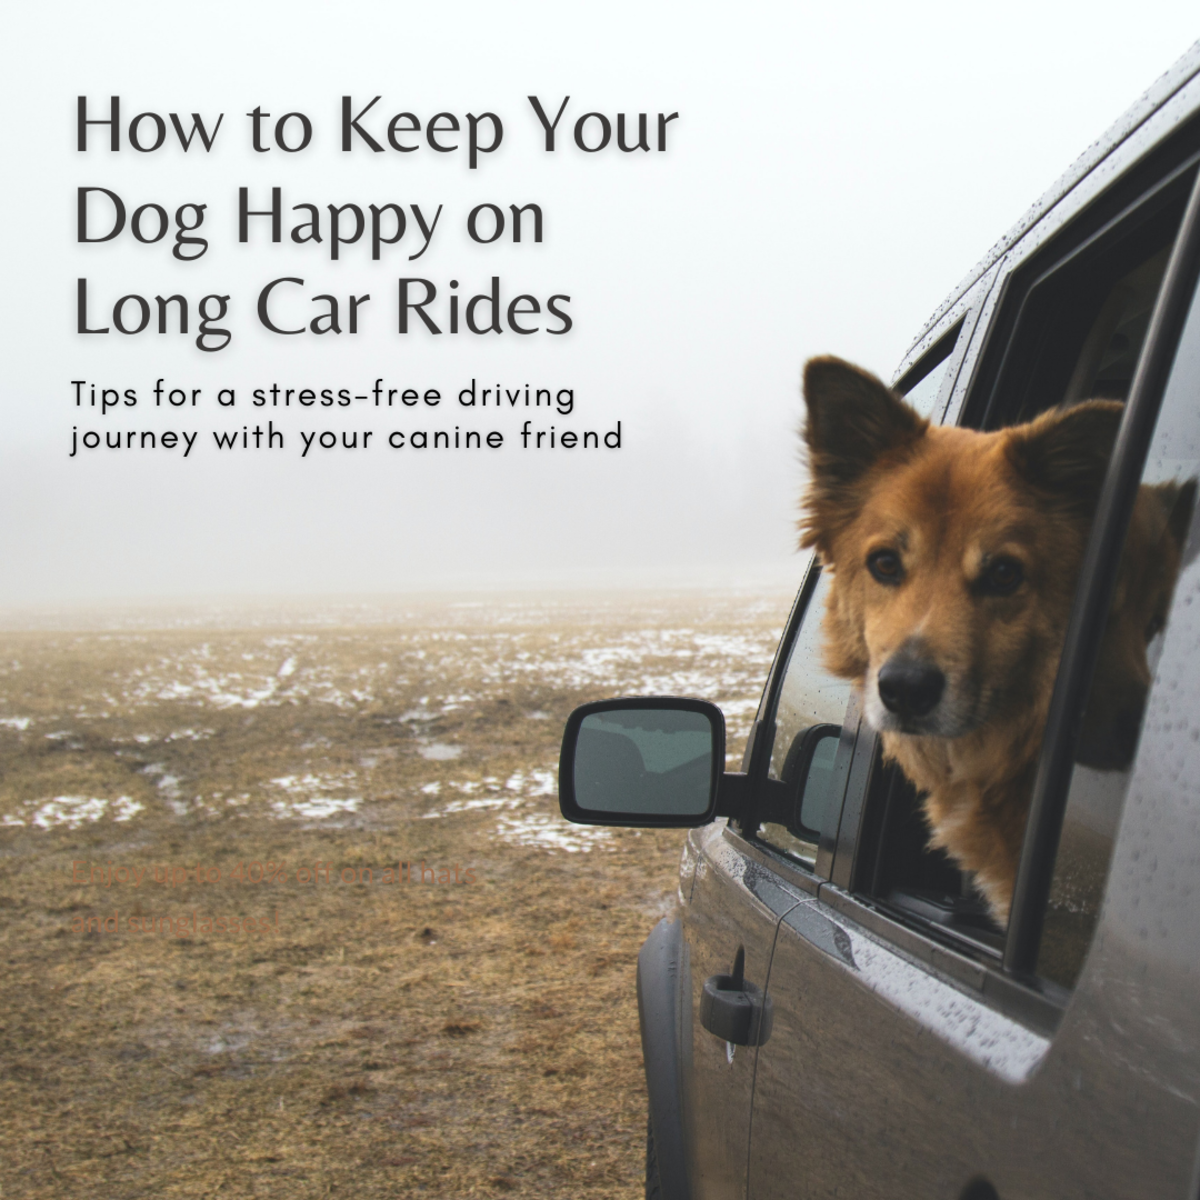 This guide will help you keep your dog calm and happy during long car rides.